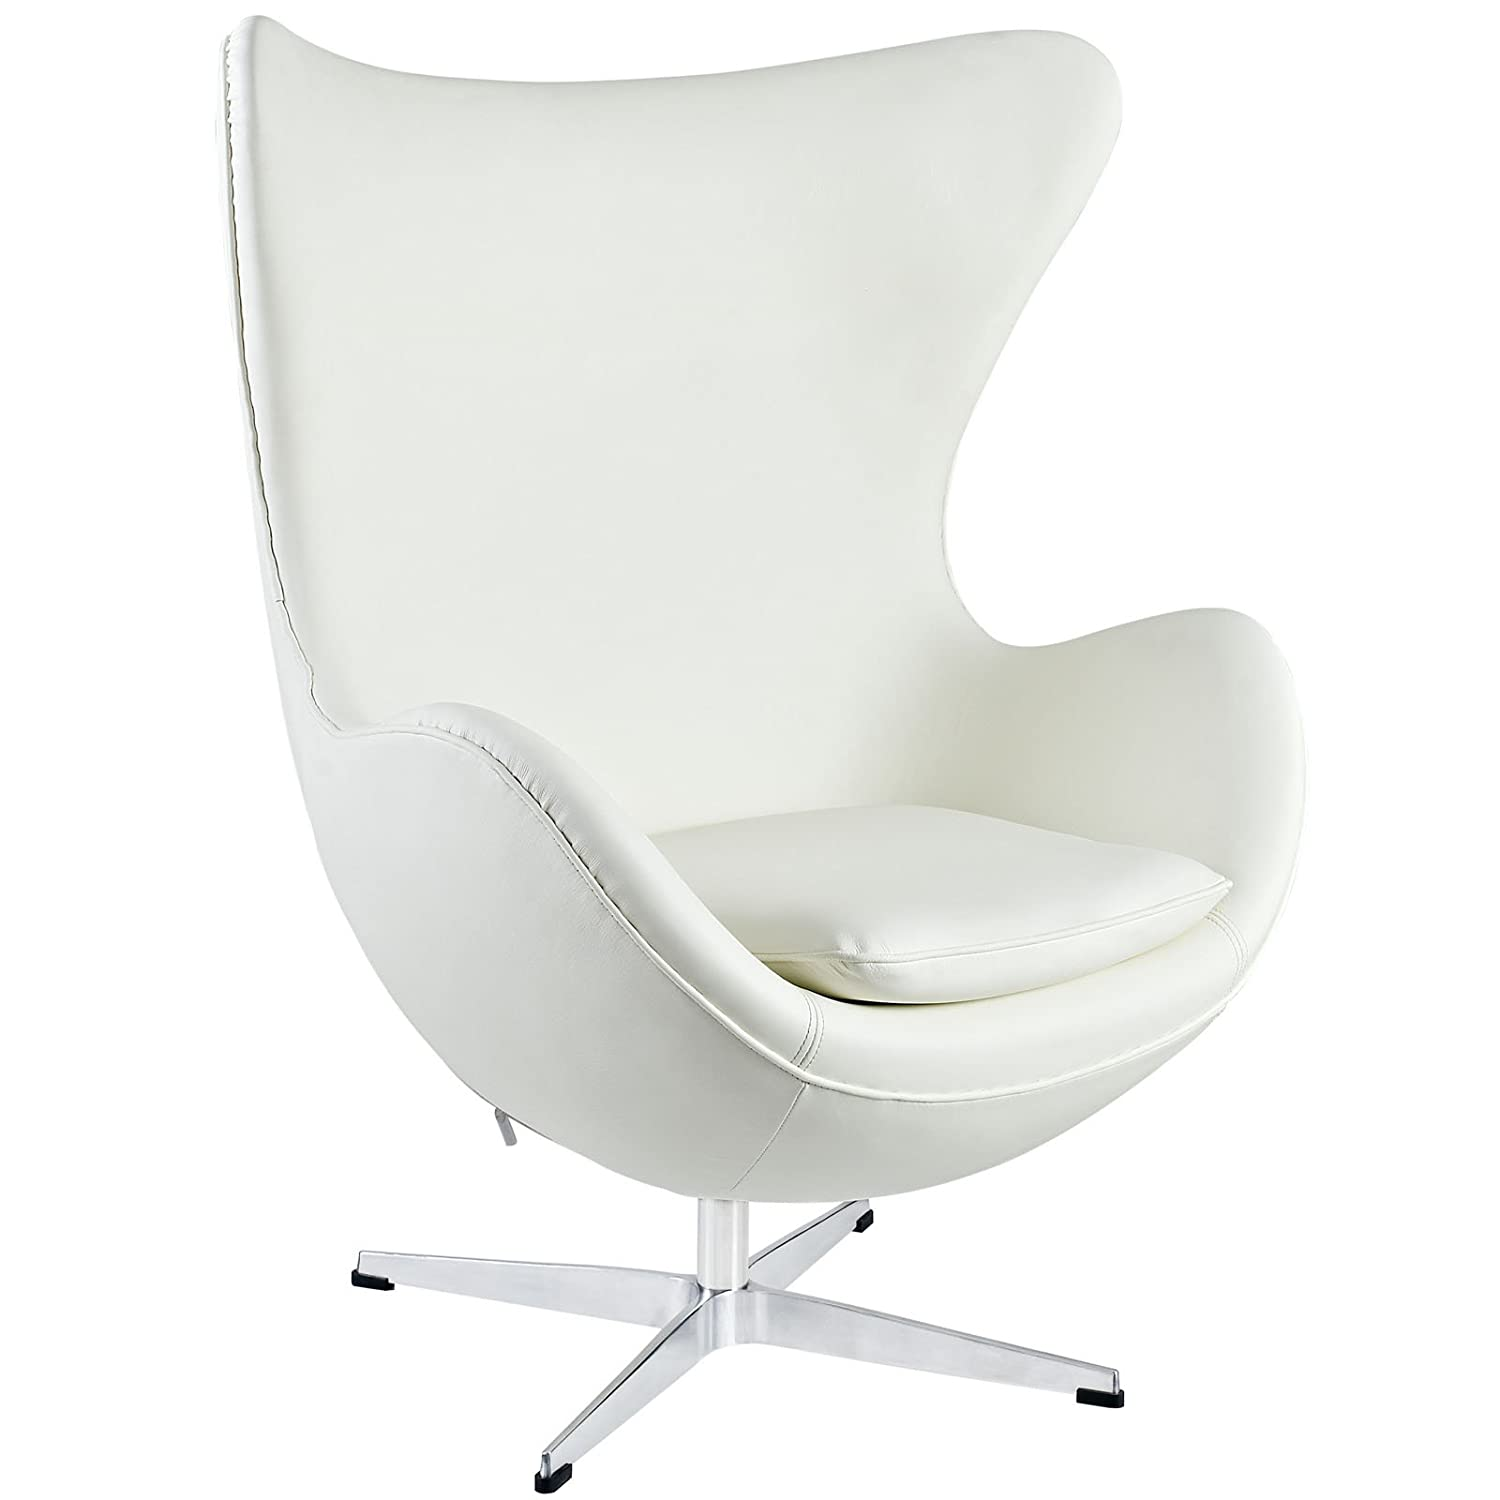 Arne jacobsen egg chair white - Amazon Com Modway Glove Leather Lounge Chair In White Kitchen Dining